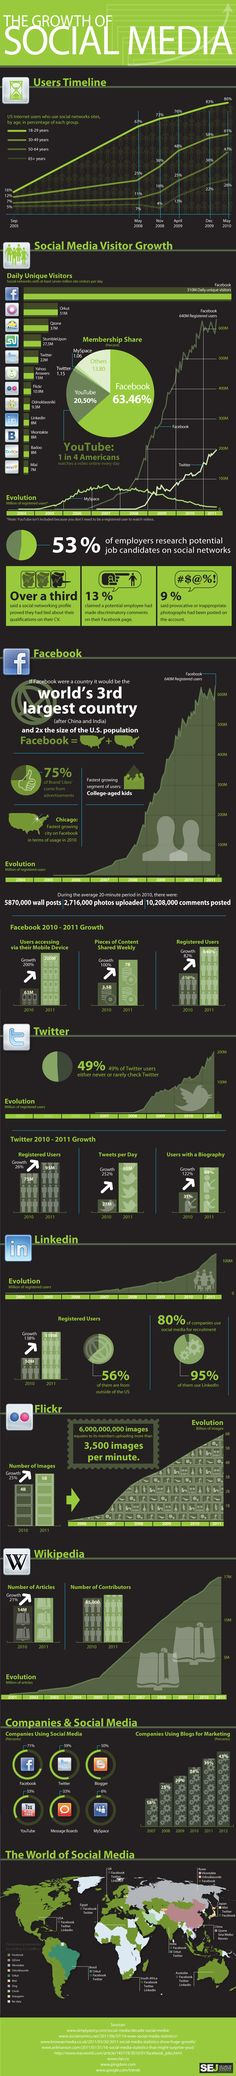 The Growth of Social Media #infographic @jeffbullas #socialmedia